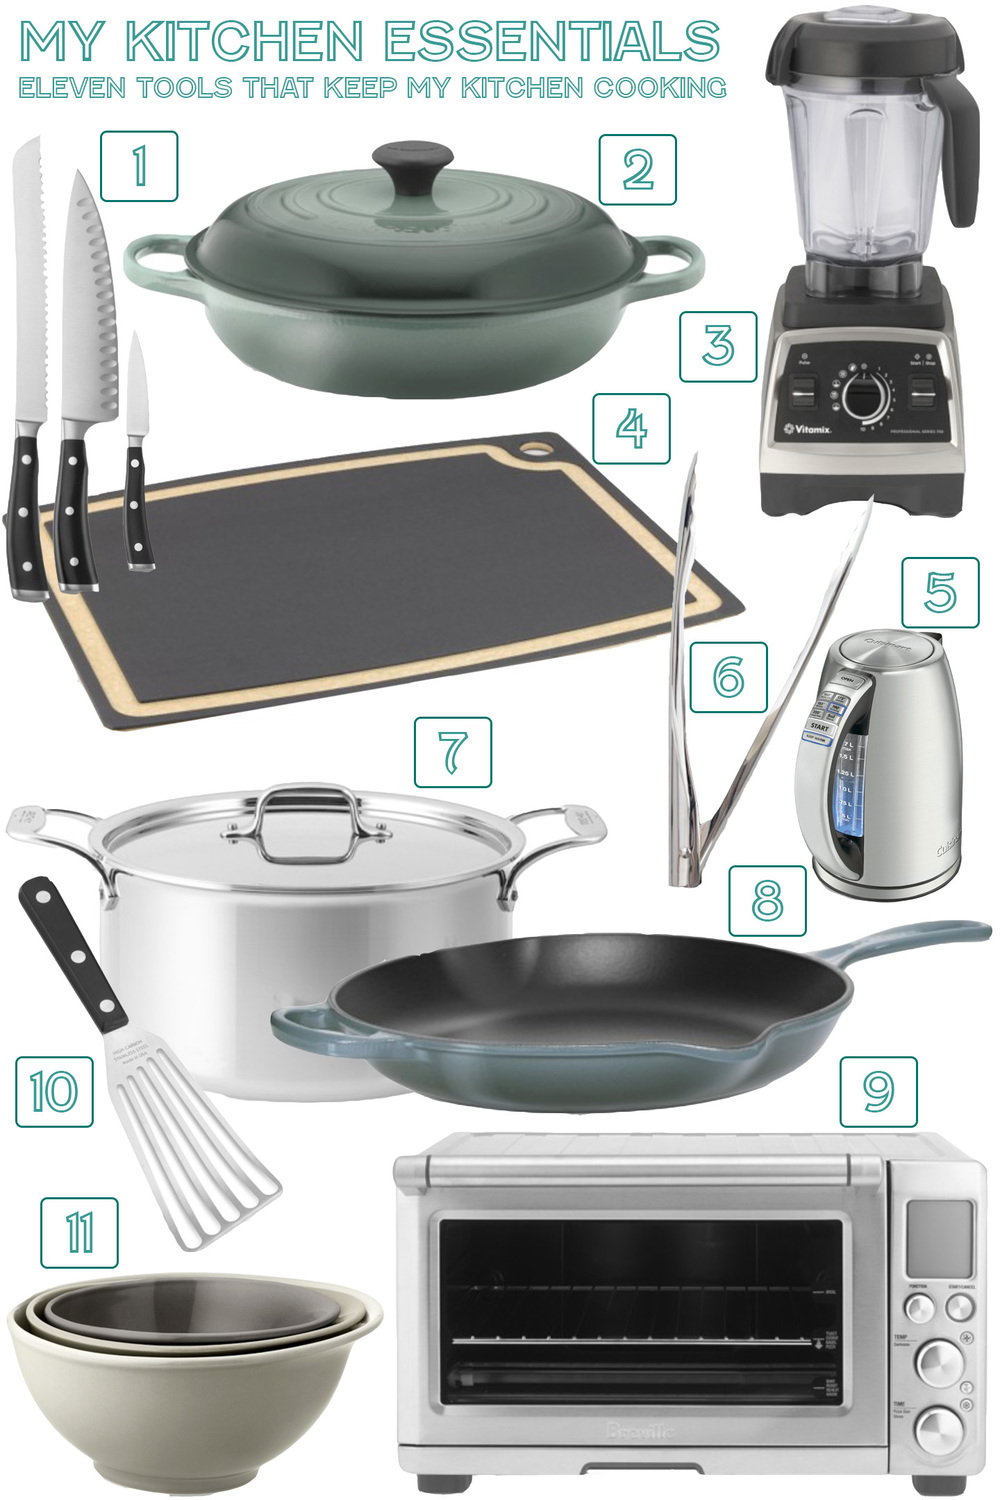 asimplerdesign-kitchenessentials-roundup